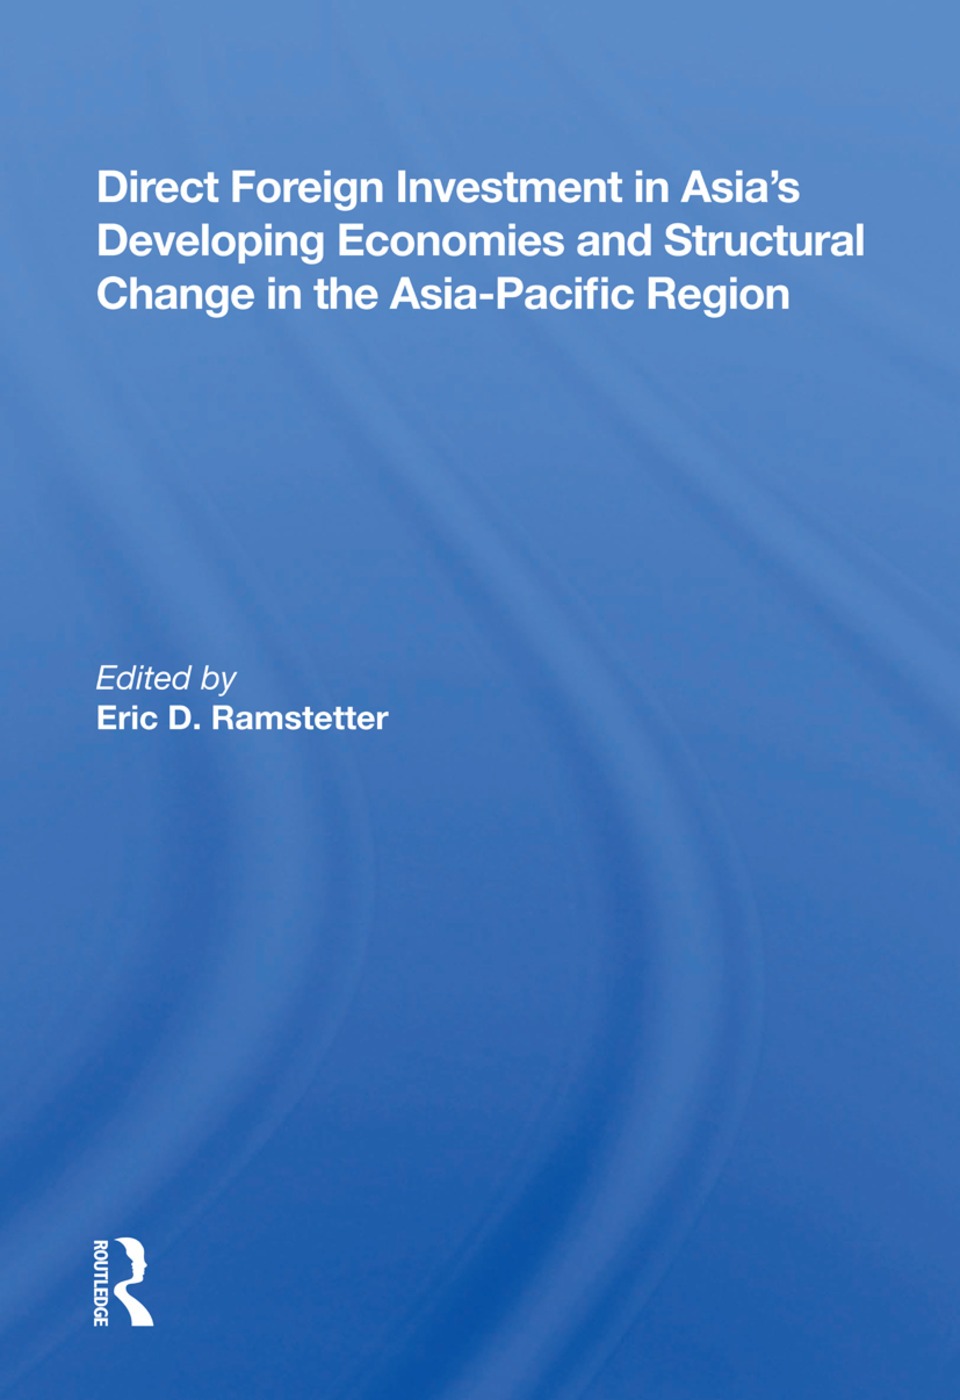 Direct Foreign Investment In Asia's Developing Economies And Structural Change In The Asia-pacific Region: 1st Edition (Hardback) book cover